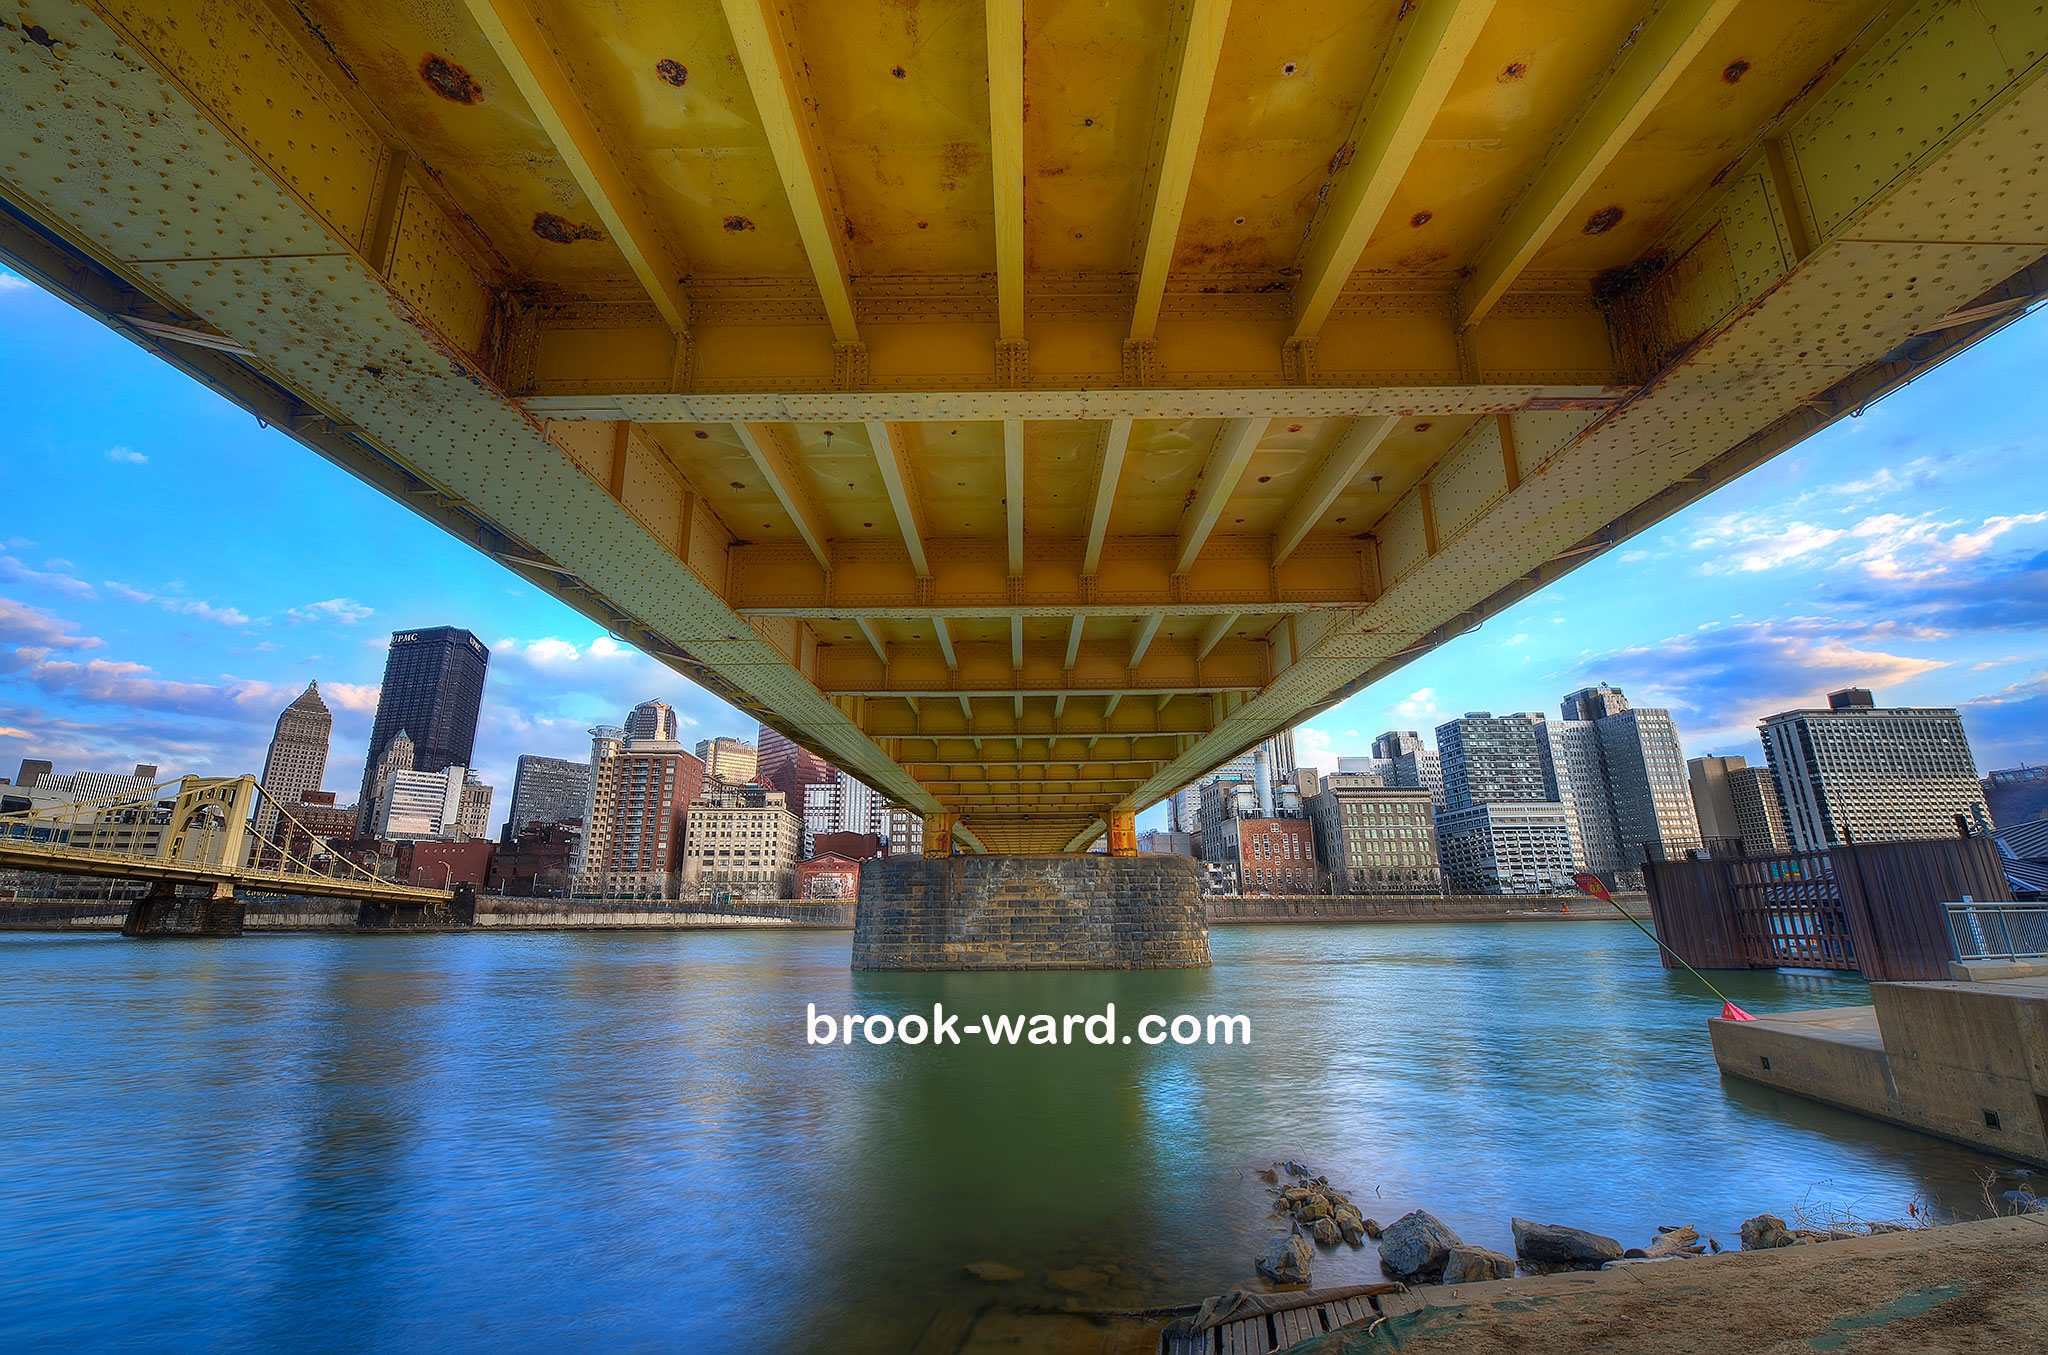 iPad-Under-The-Bridge-2013.jpg